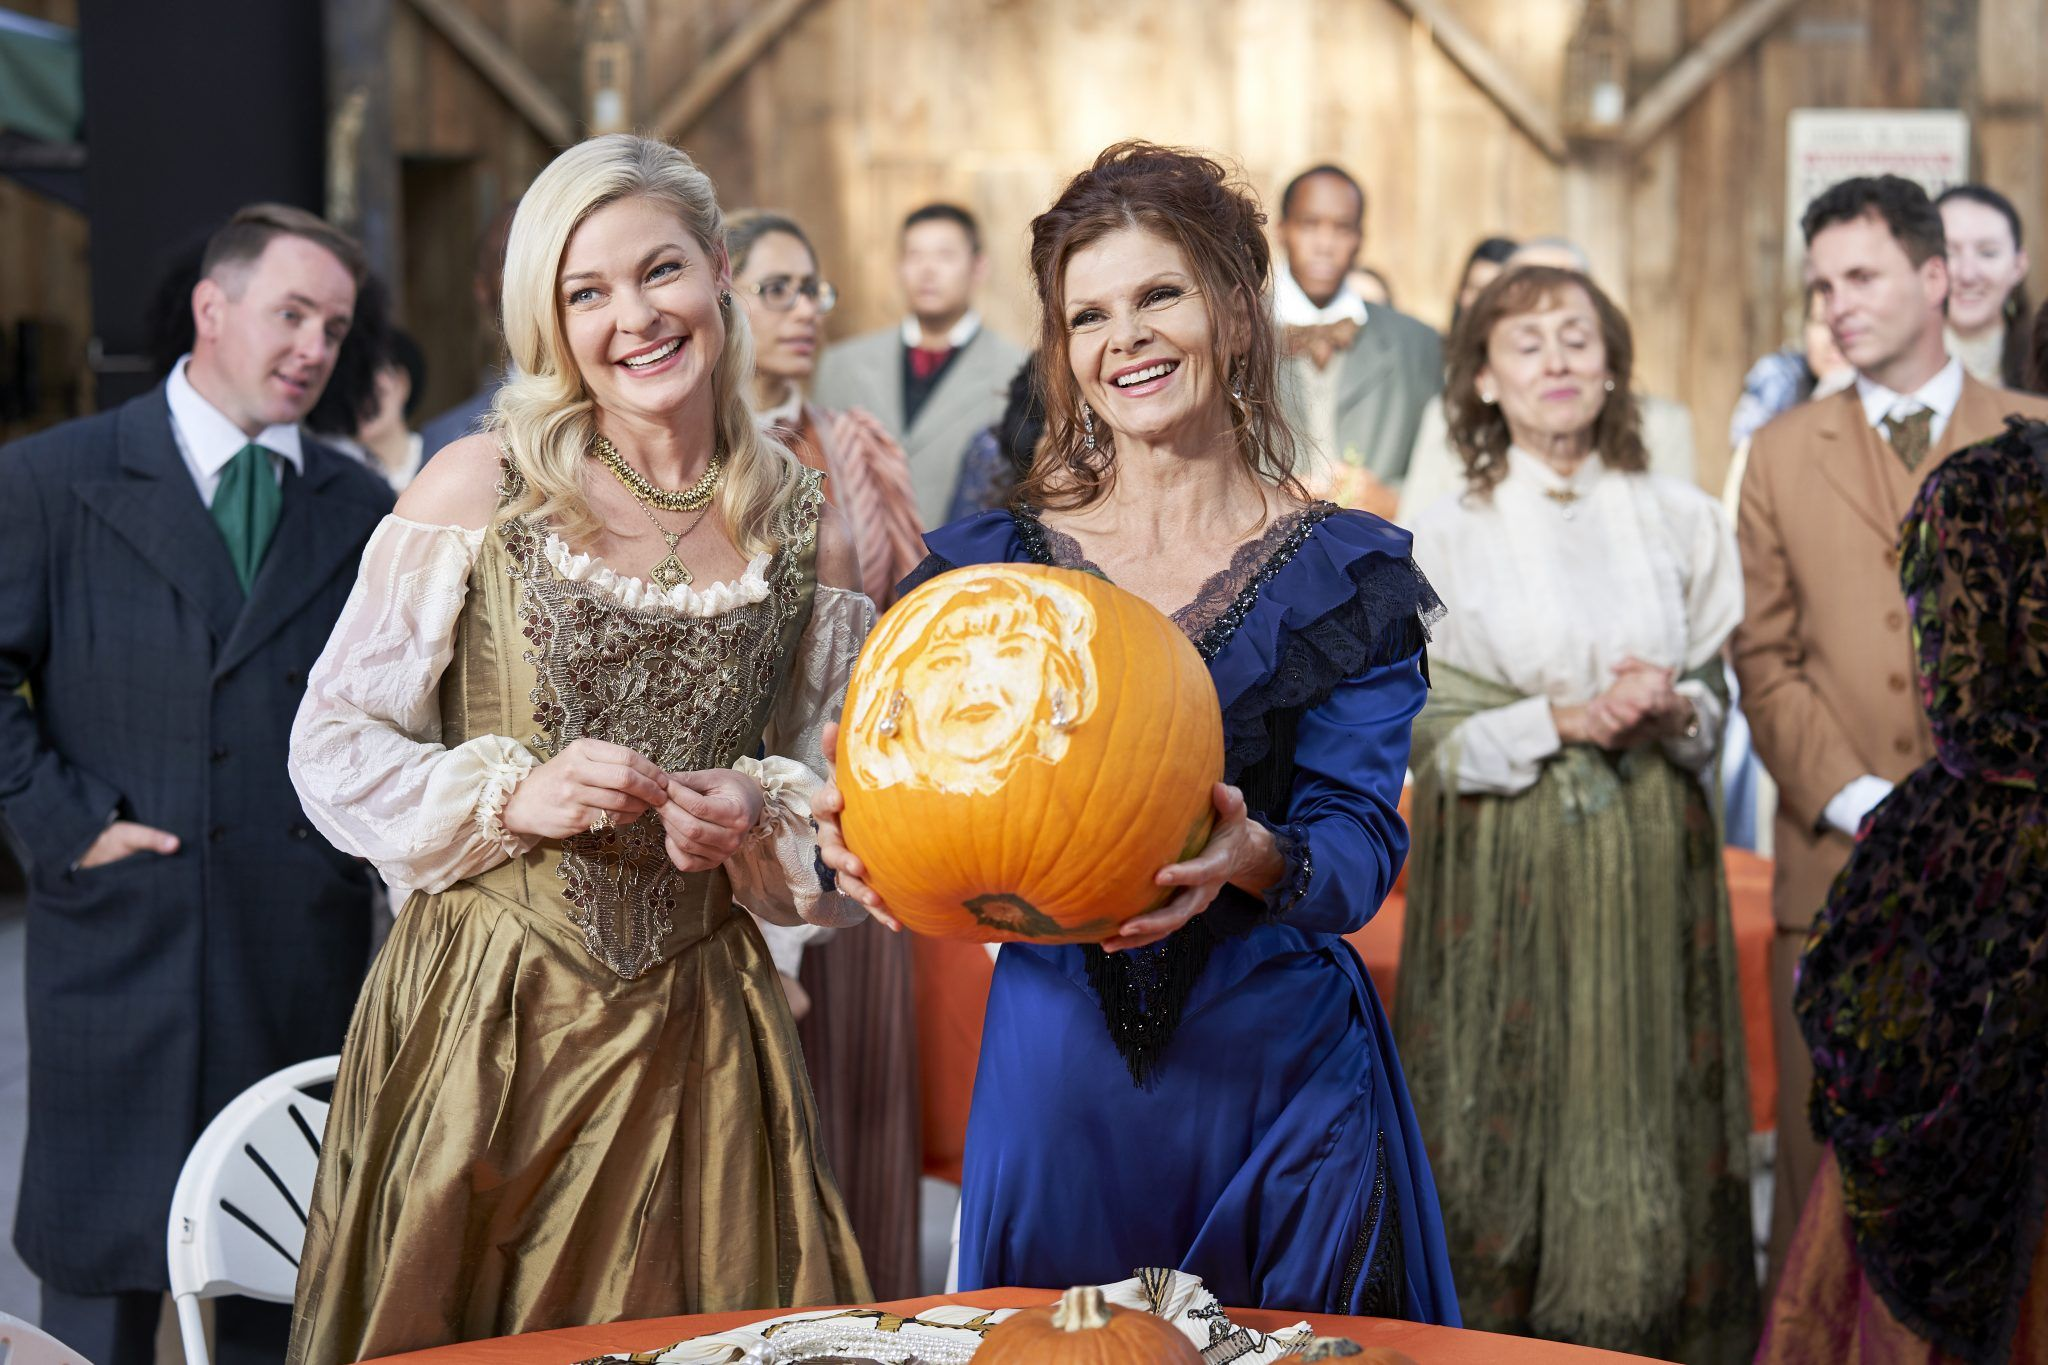 The Good Witch Halloween Special 2020 Will Hallmark Do A 'Good Witch' Halloween Special Movie For 2020